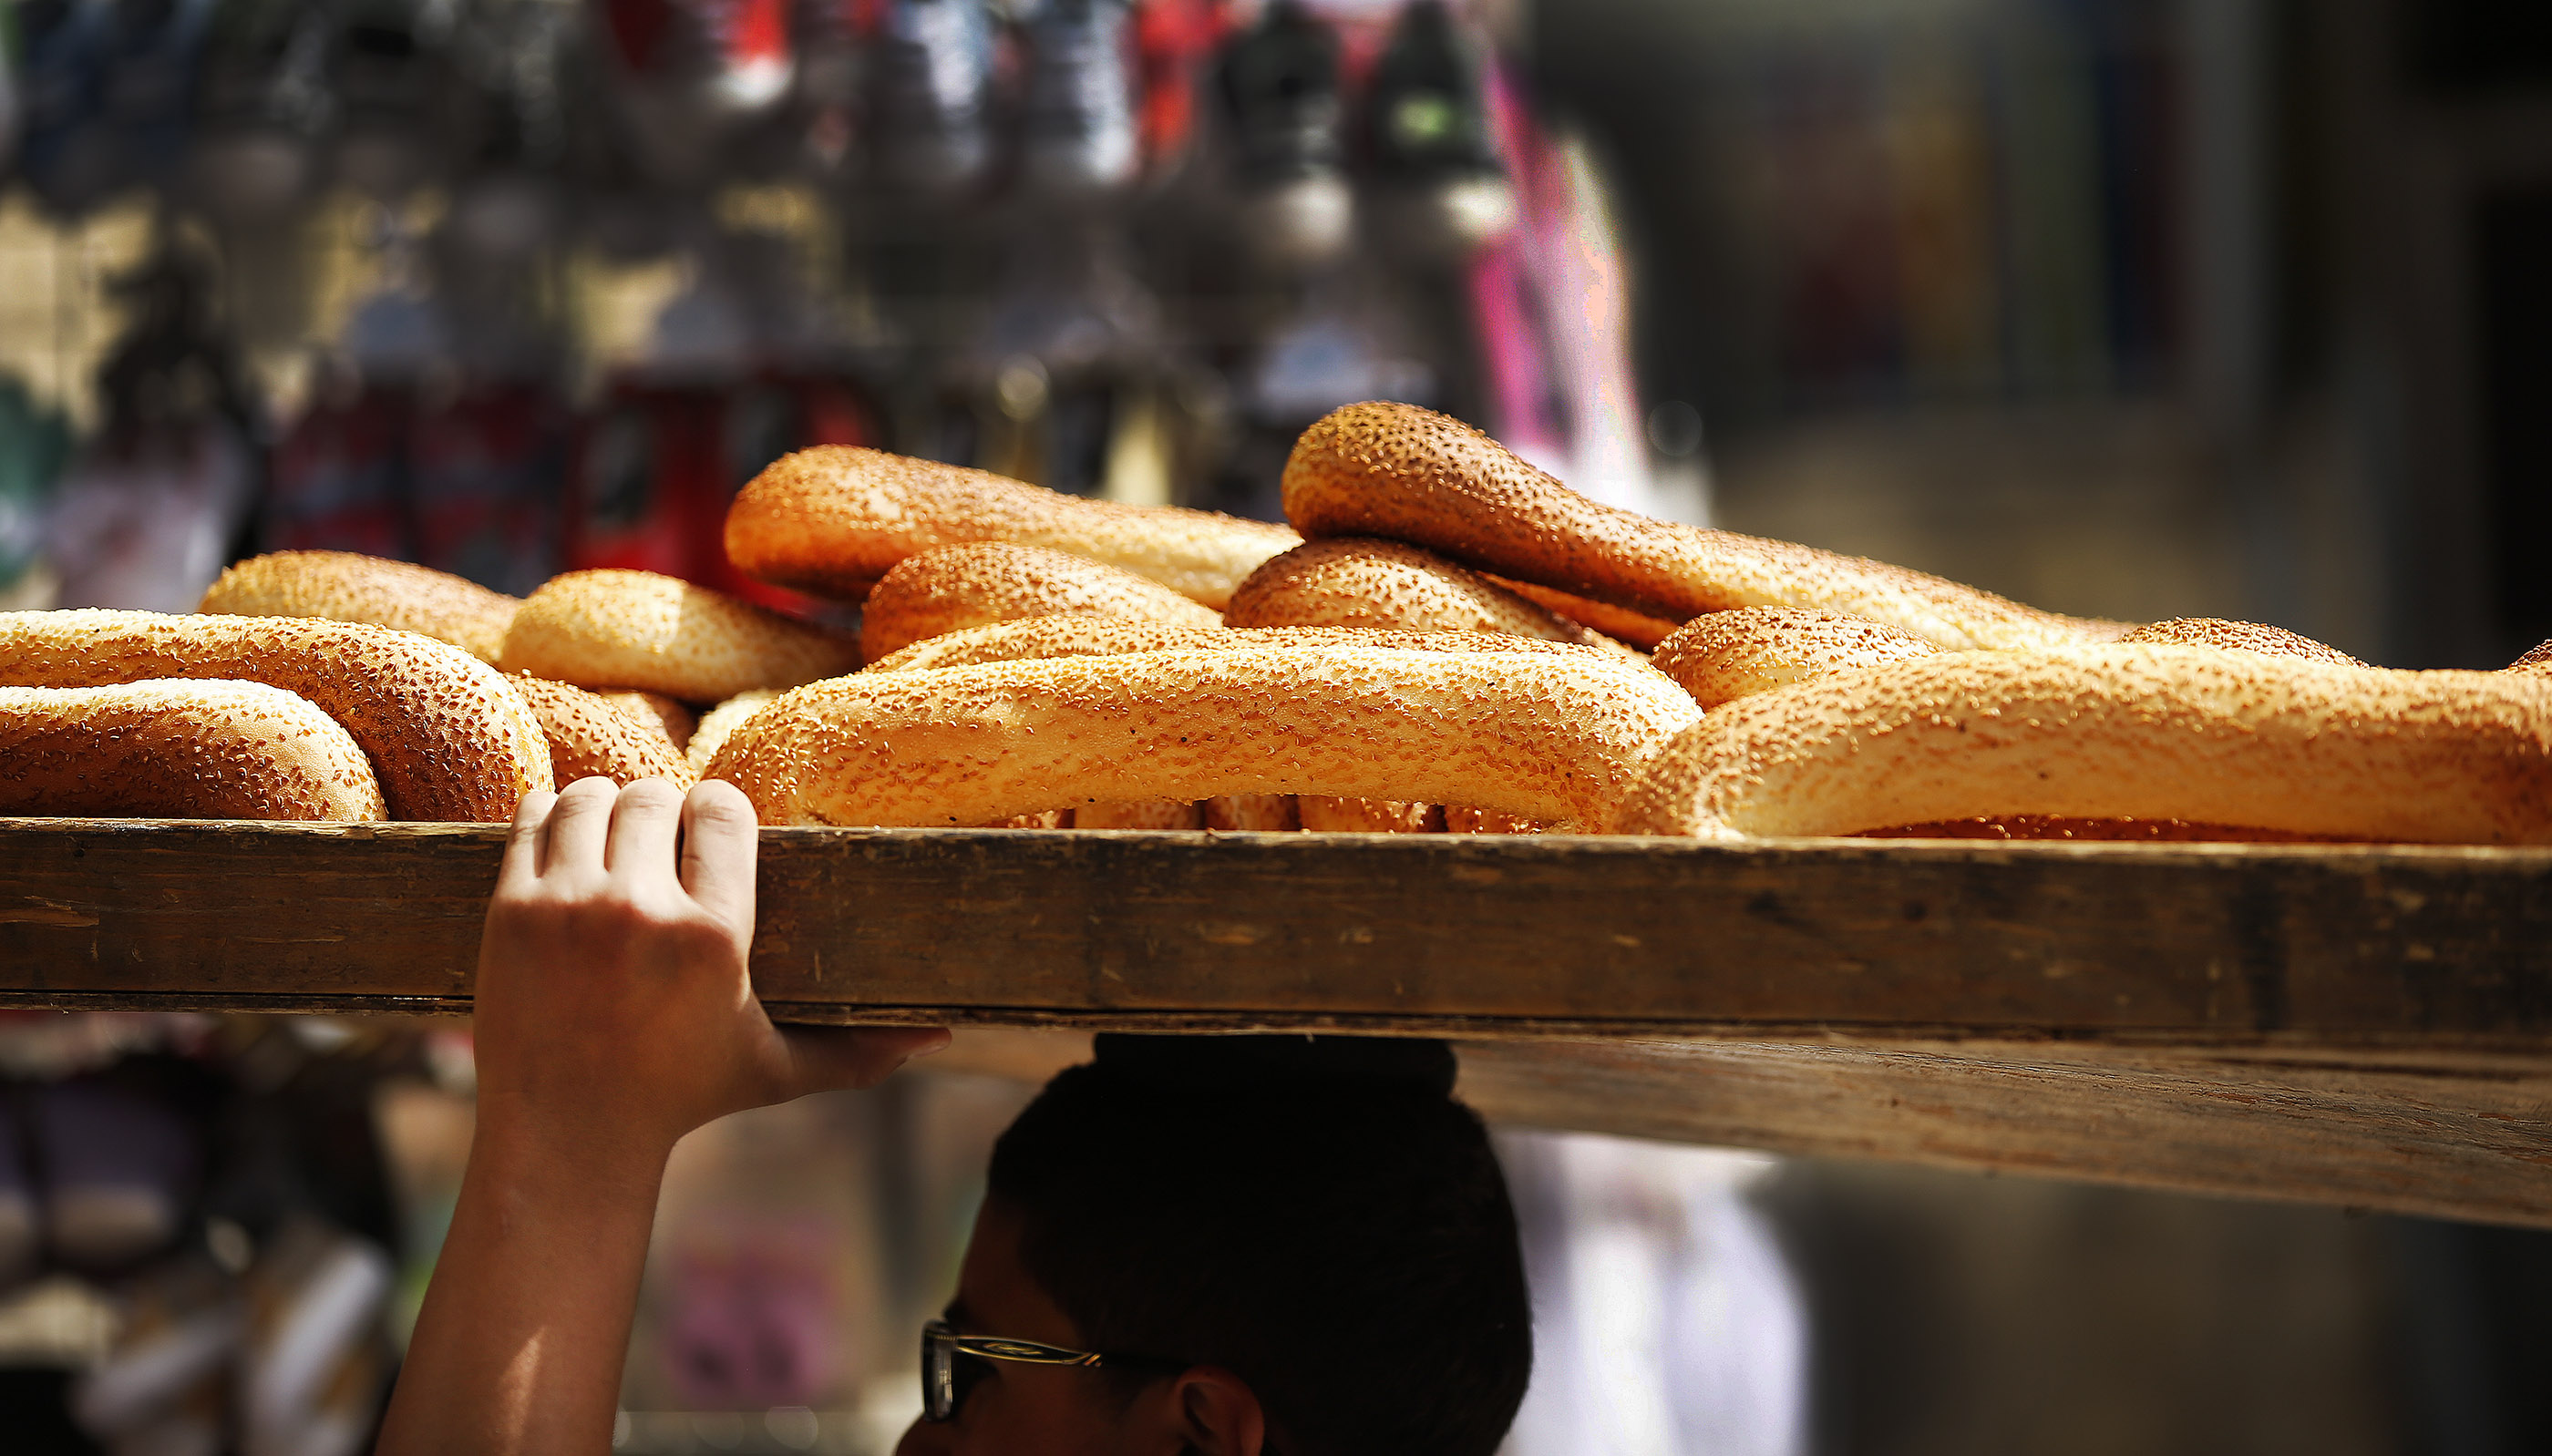 Bread is delivered at the Old City market in Jerusalem on Friday, April 13, 2018.